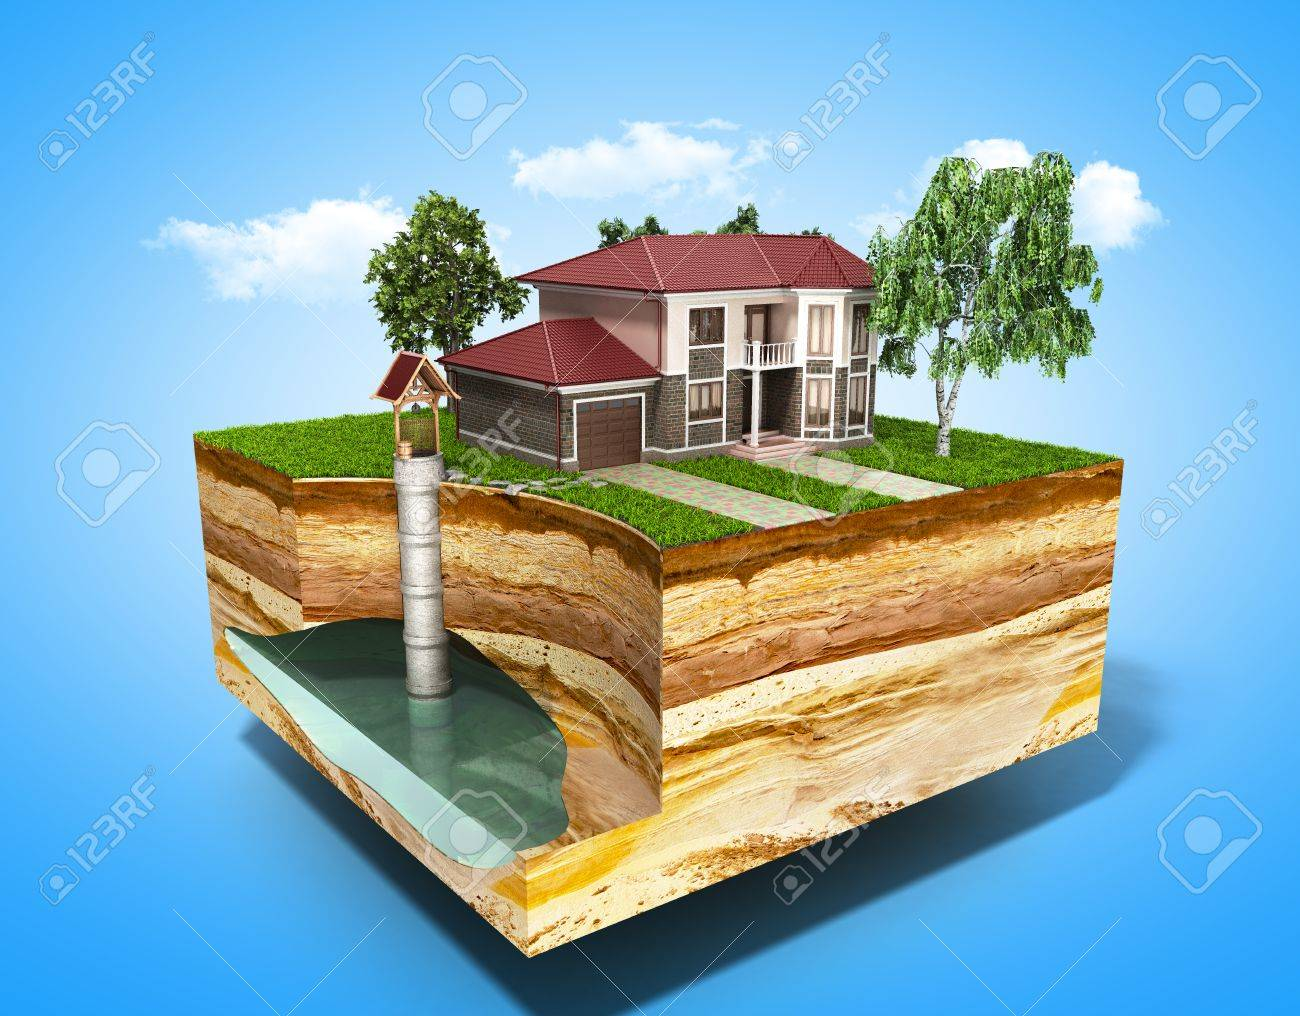 water well system The image depicts an underground aquifer 3d render on blue - 87468225